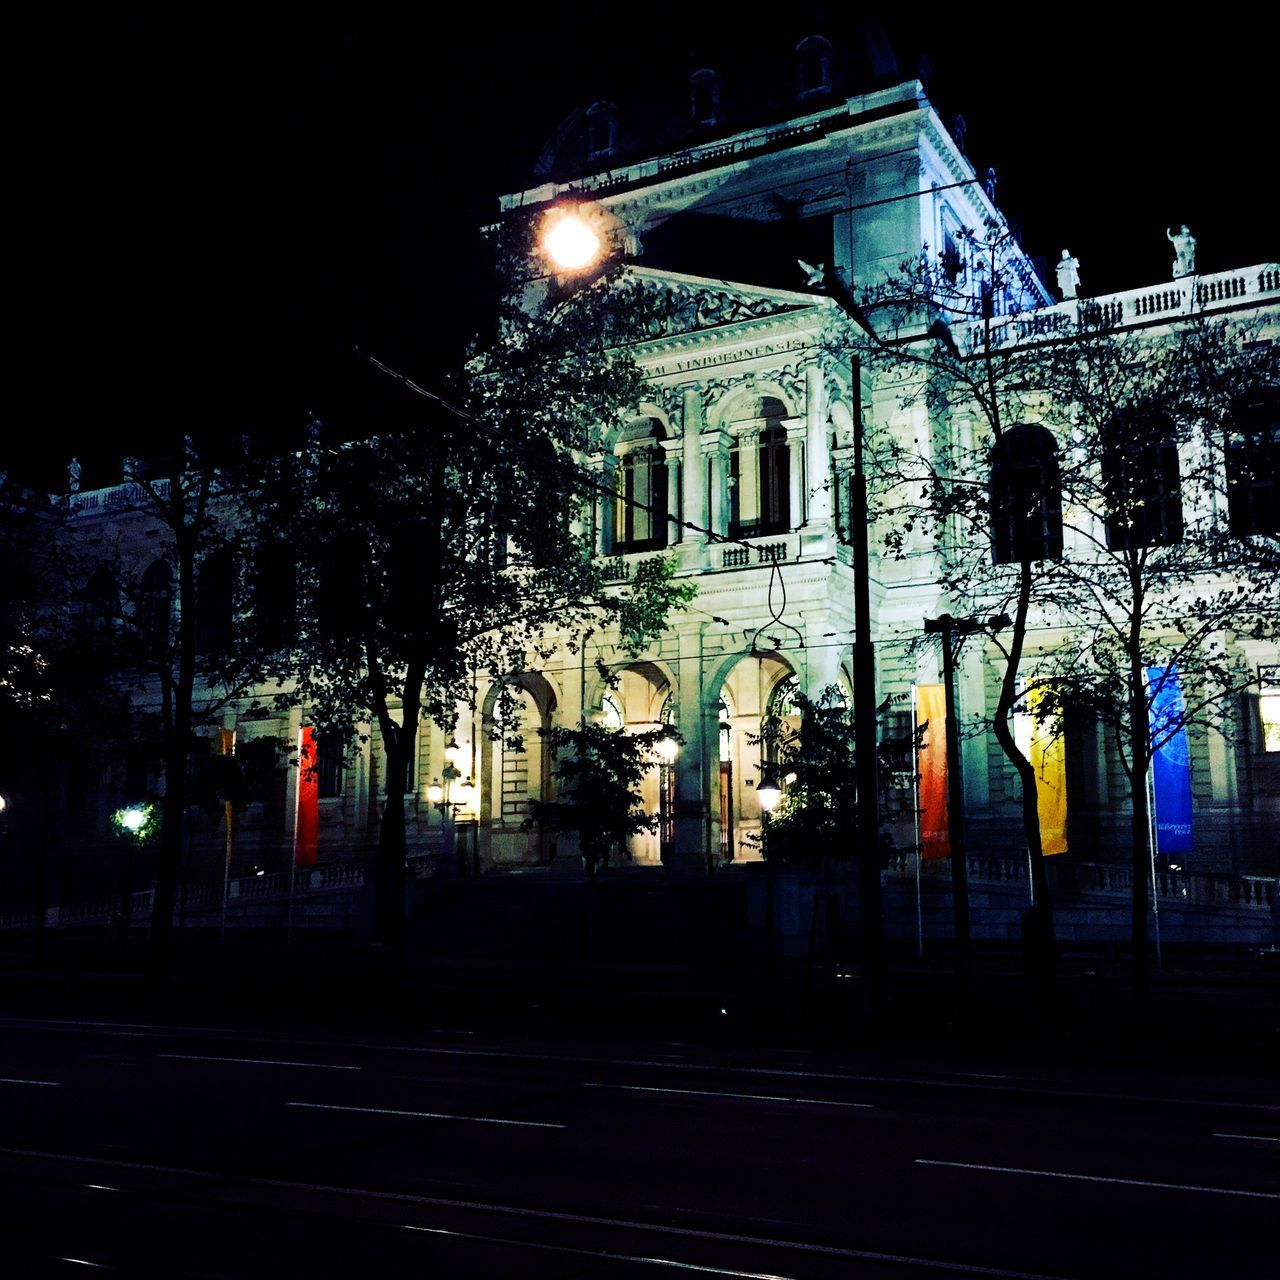 Illuminated Night Building Exterior Architecture Built Structure City Outdoors No People Vienna University Old Buildings Historical At Night Alumni